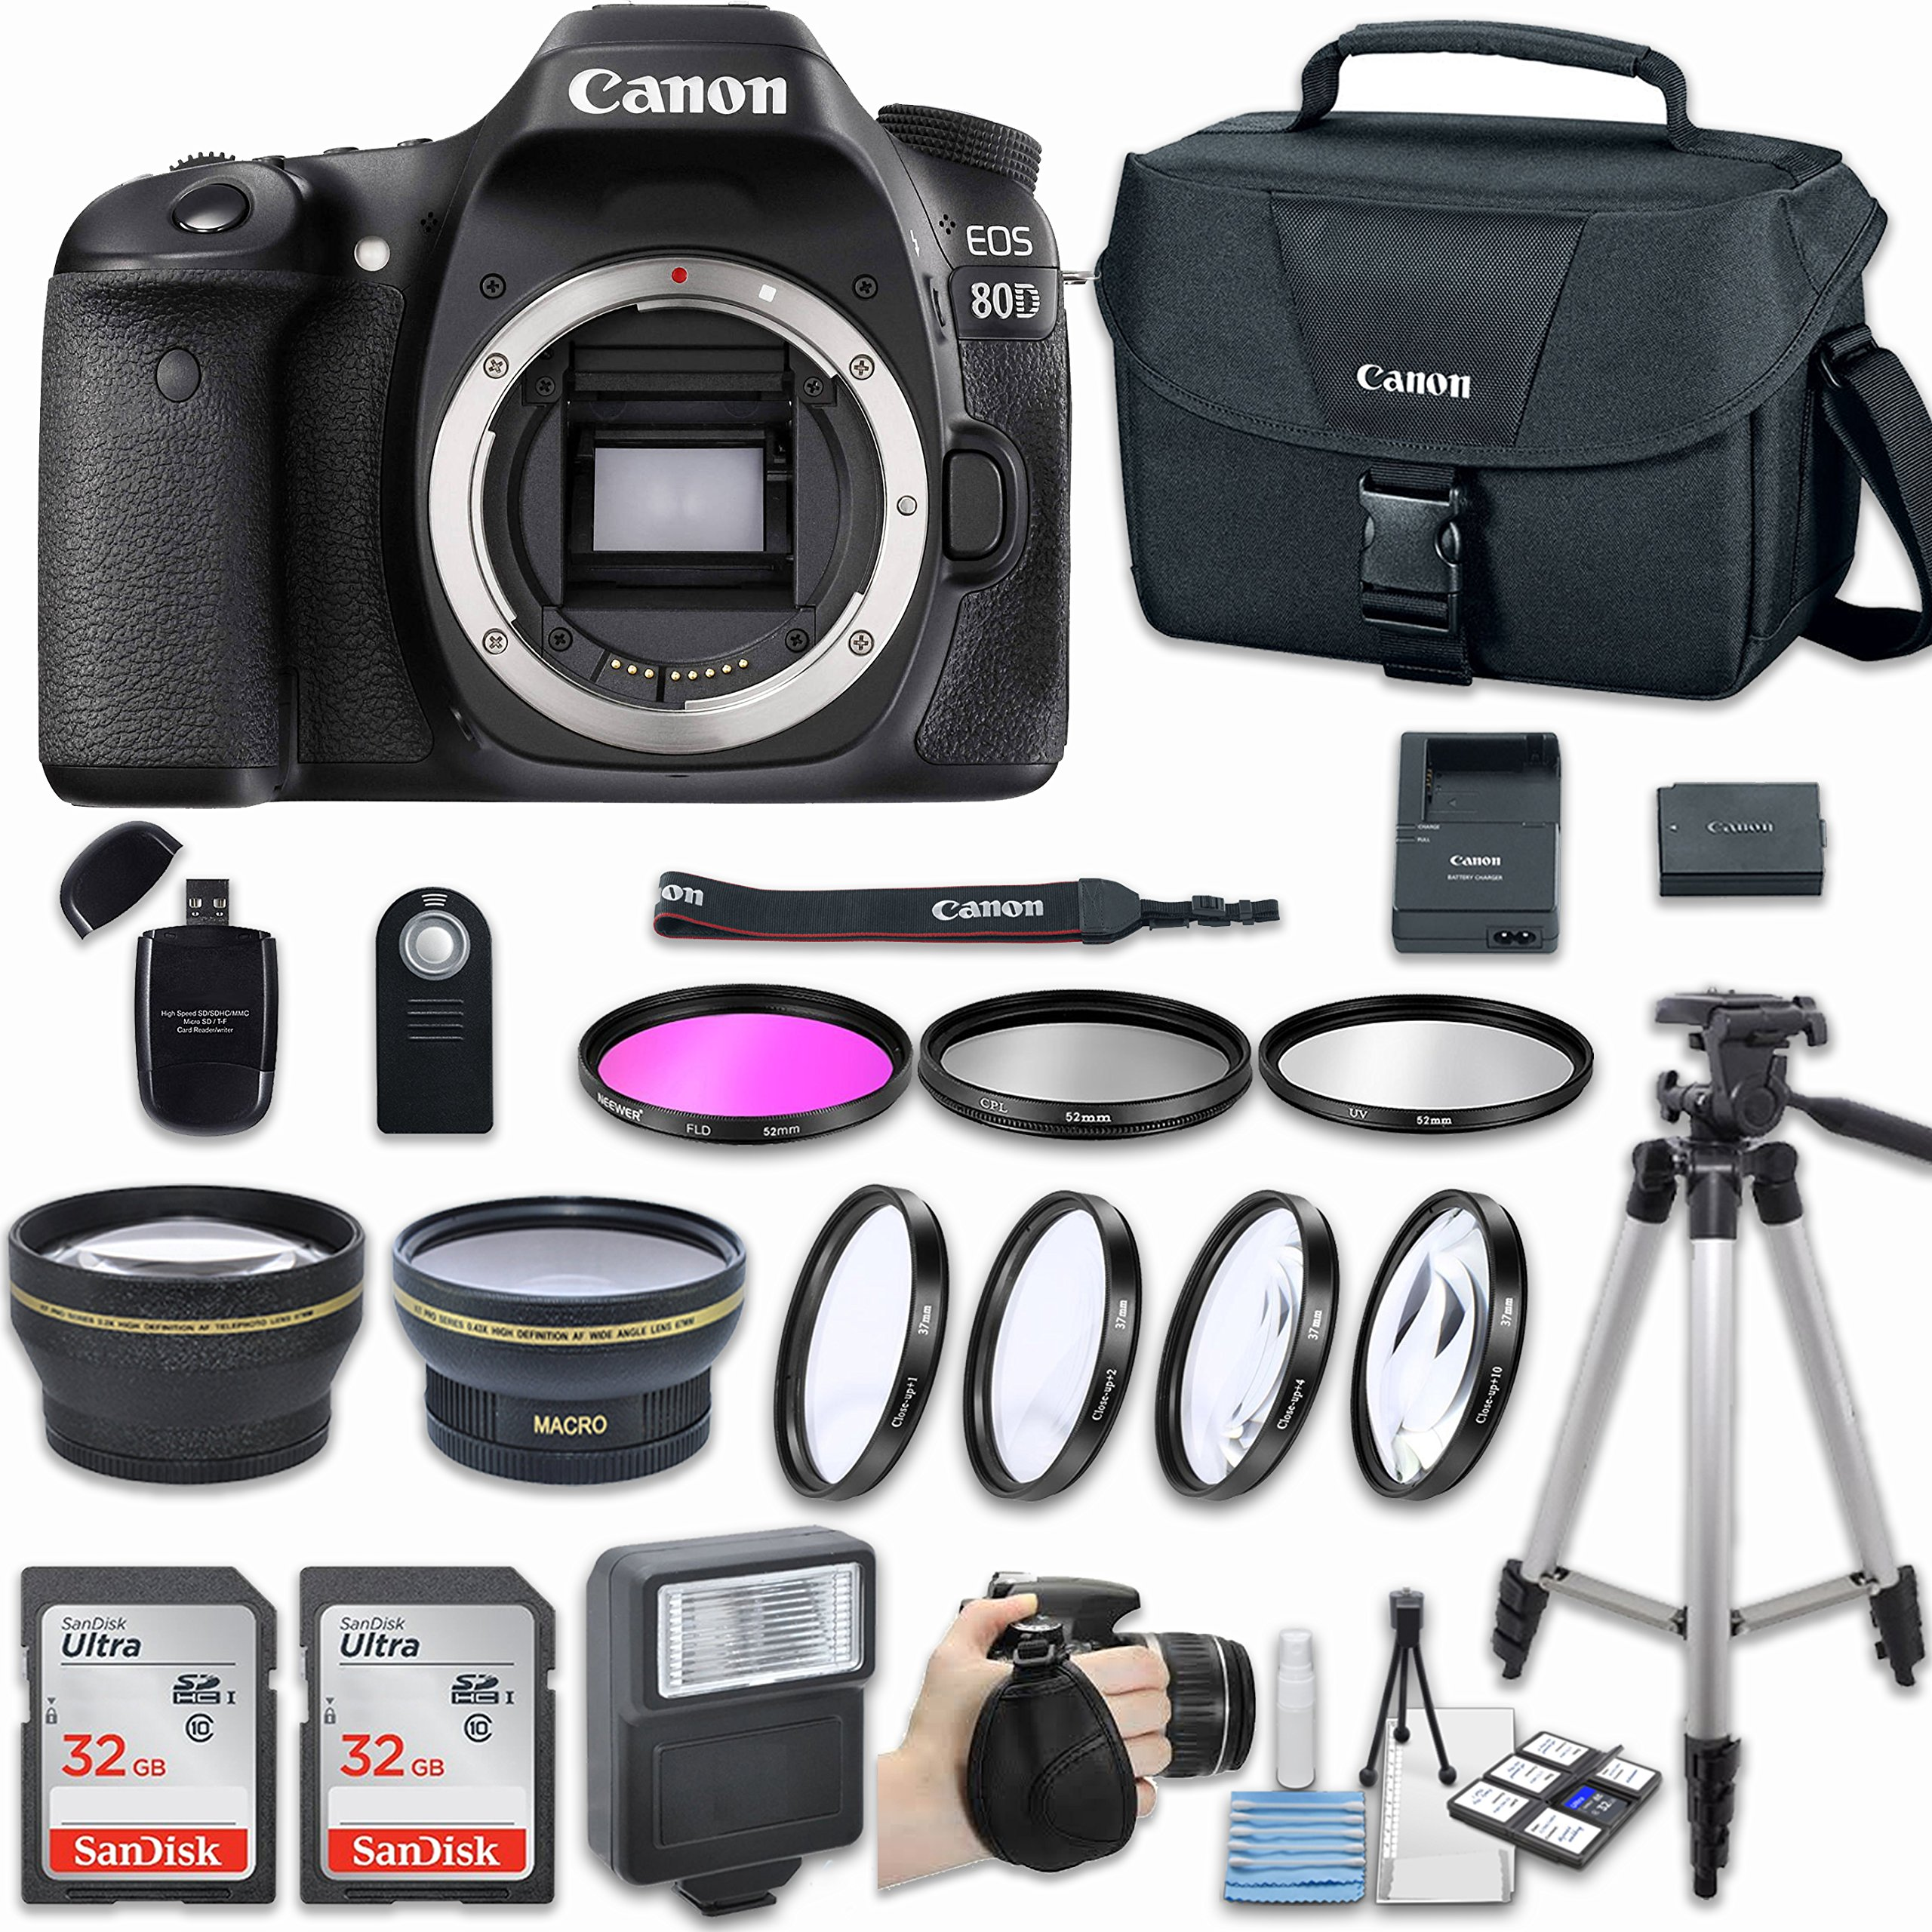 Canon EOS 80D DSLR Camera (Body Only) with Bundle - Includes 58mm HD Wide Angle Lens + 2.2x Telephoto + 2Pcs 32GB Sandisk SD Memory + Filter & Macro Kit & More Accessories by Canon